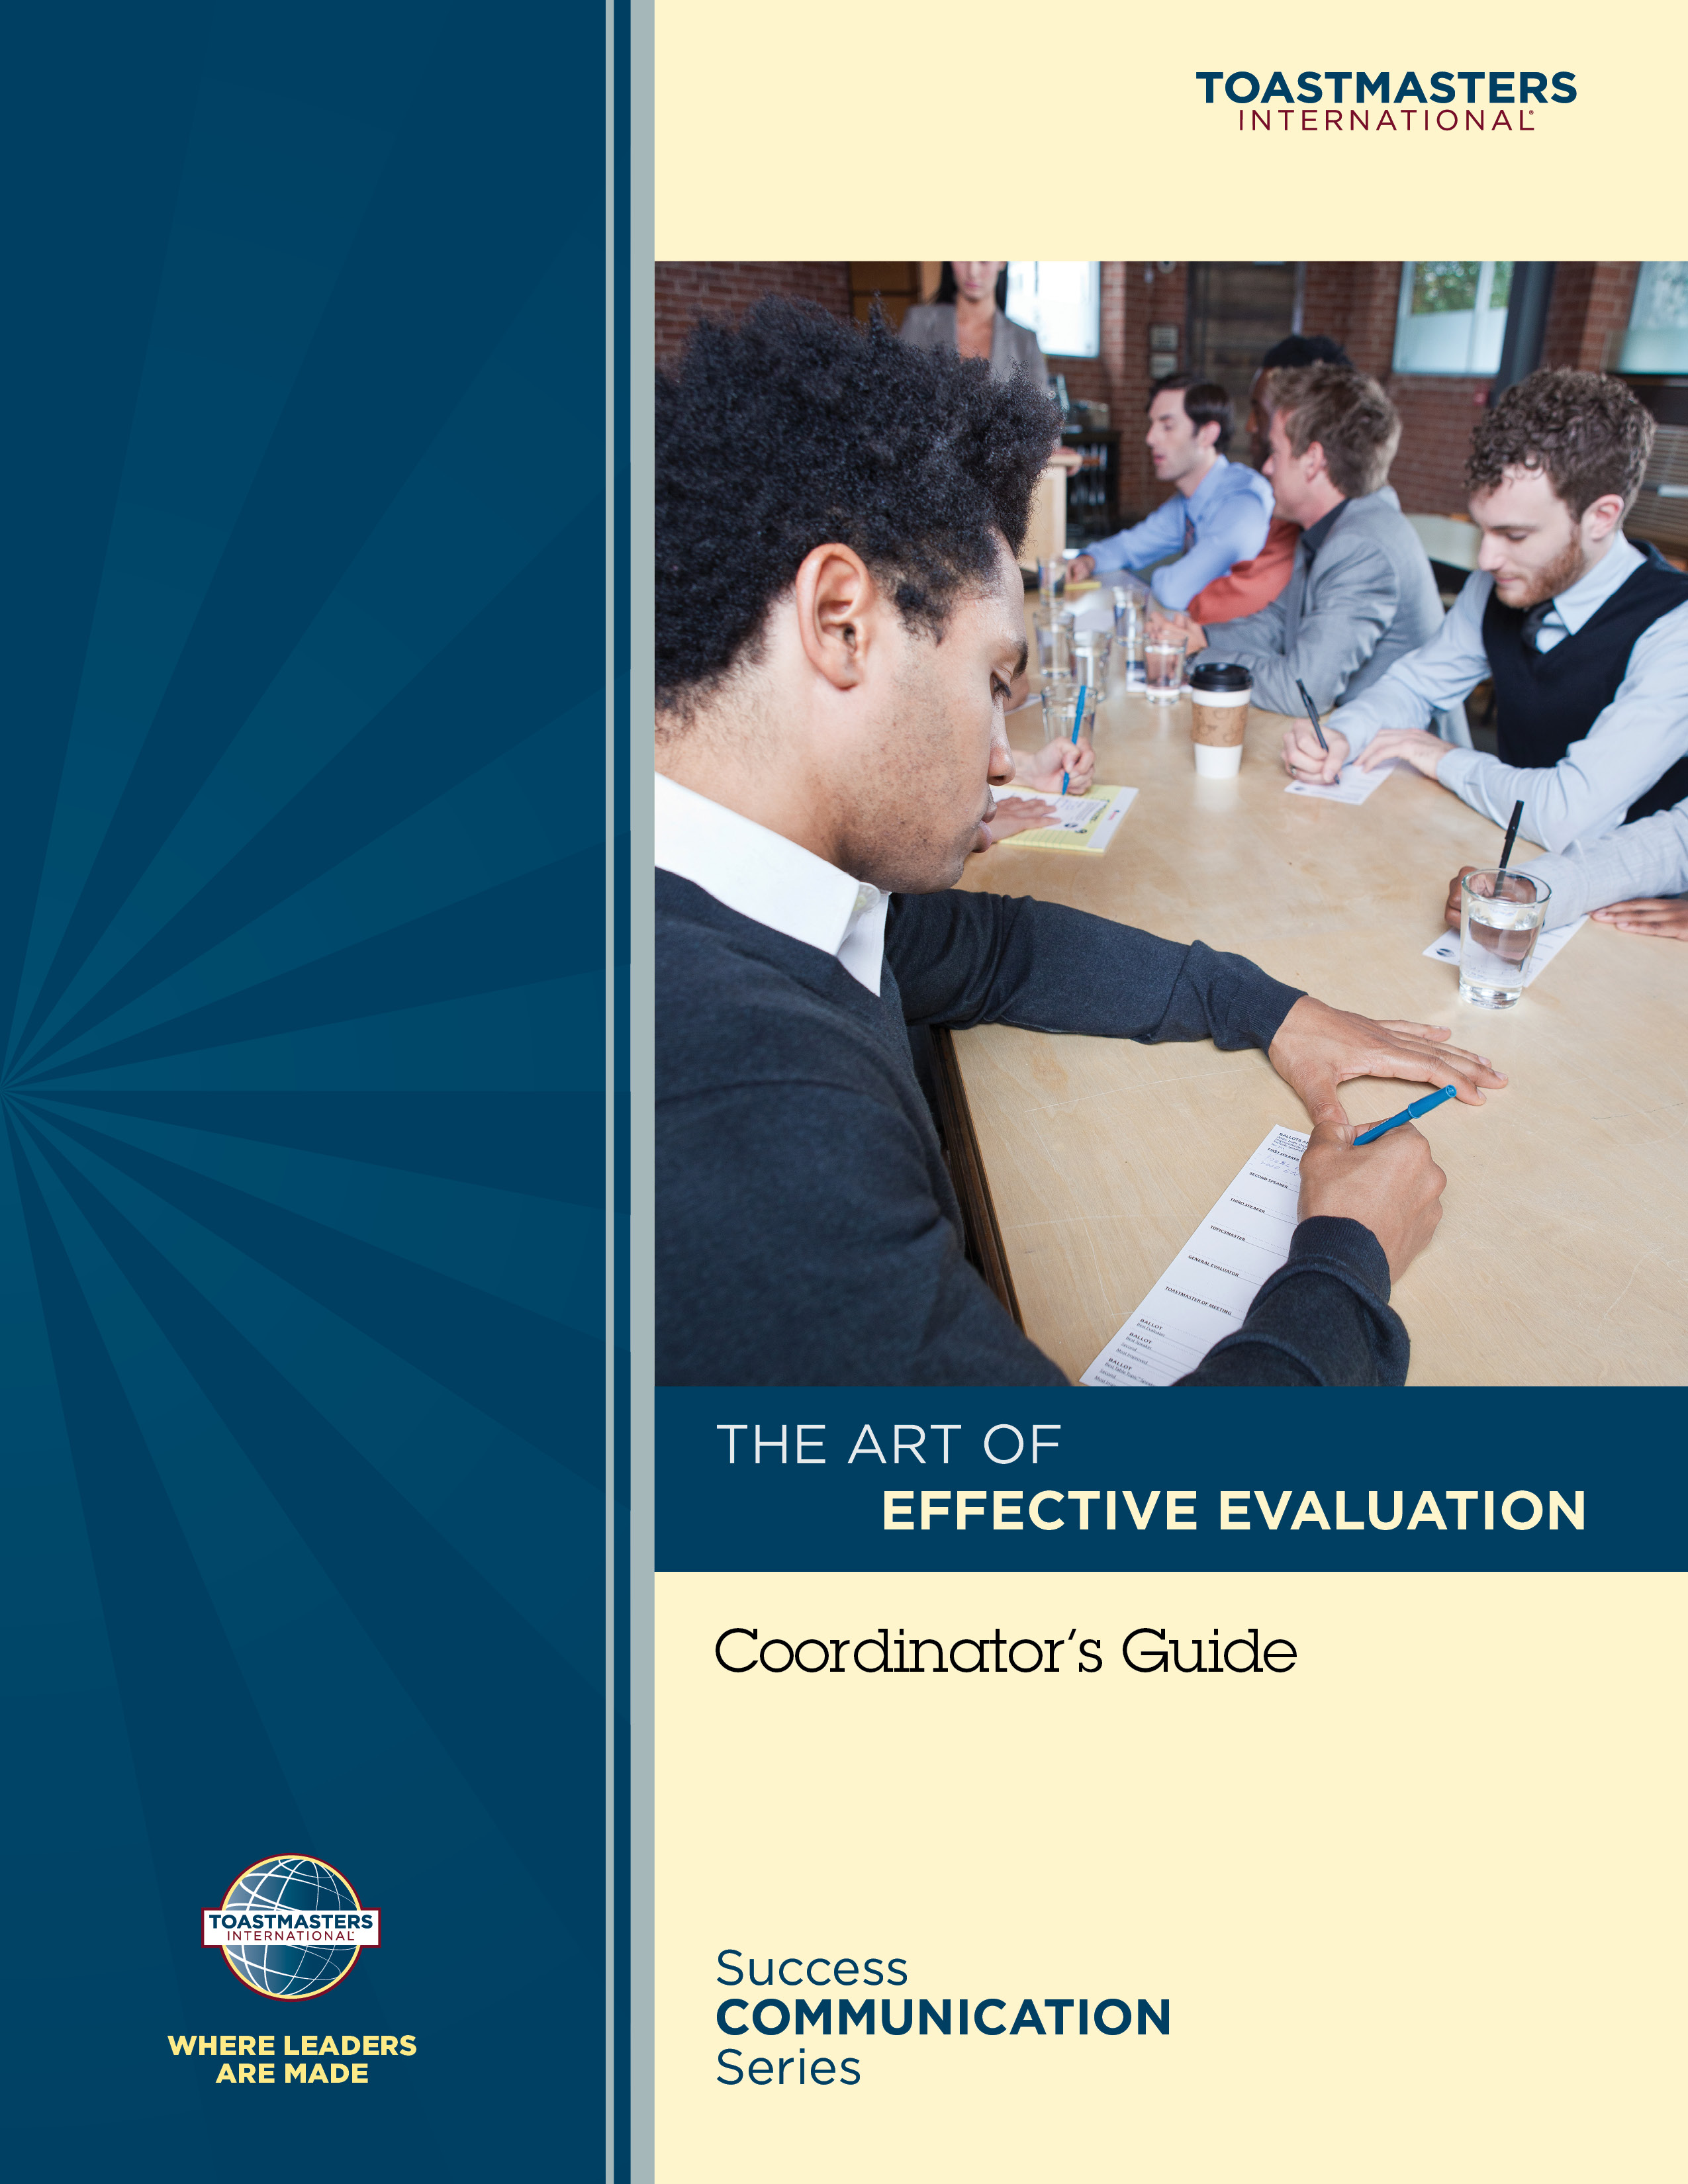 The Art of Effective Evaluation guide cover